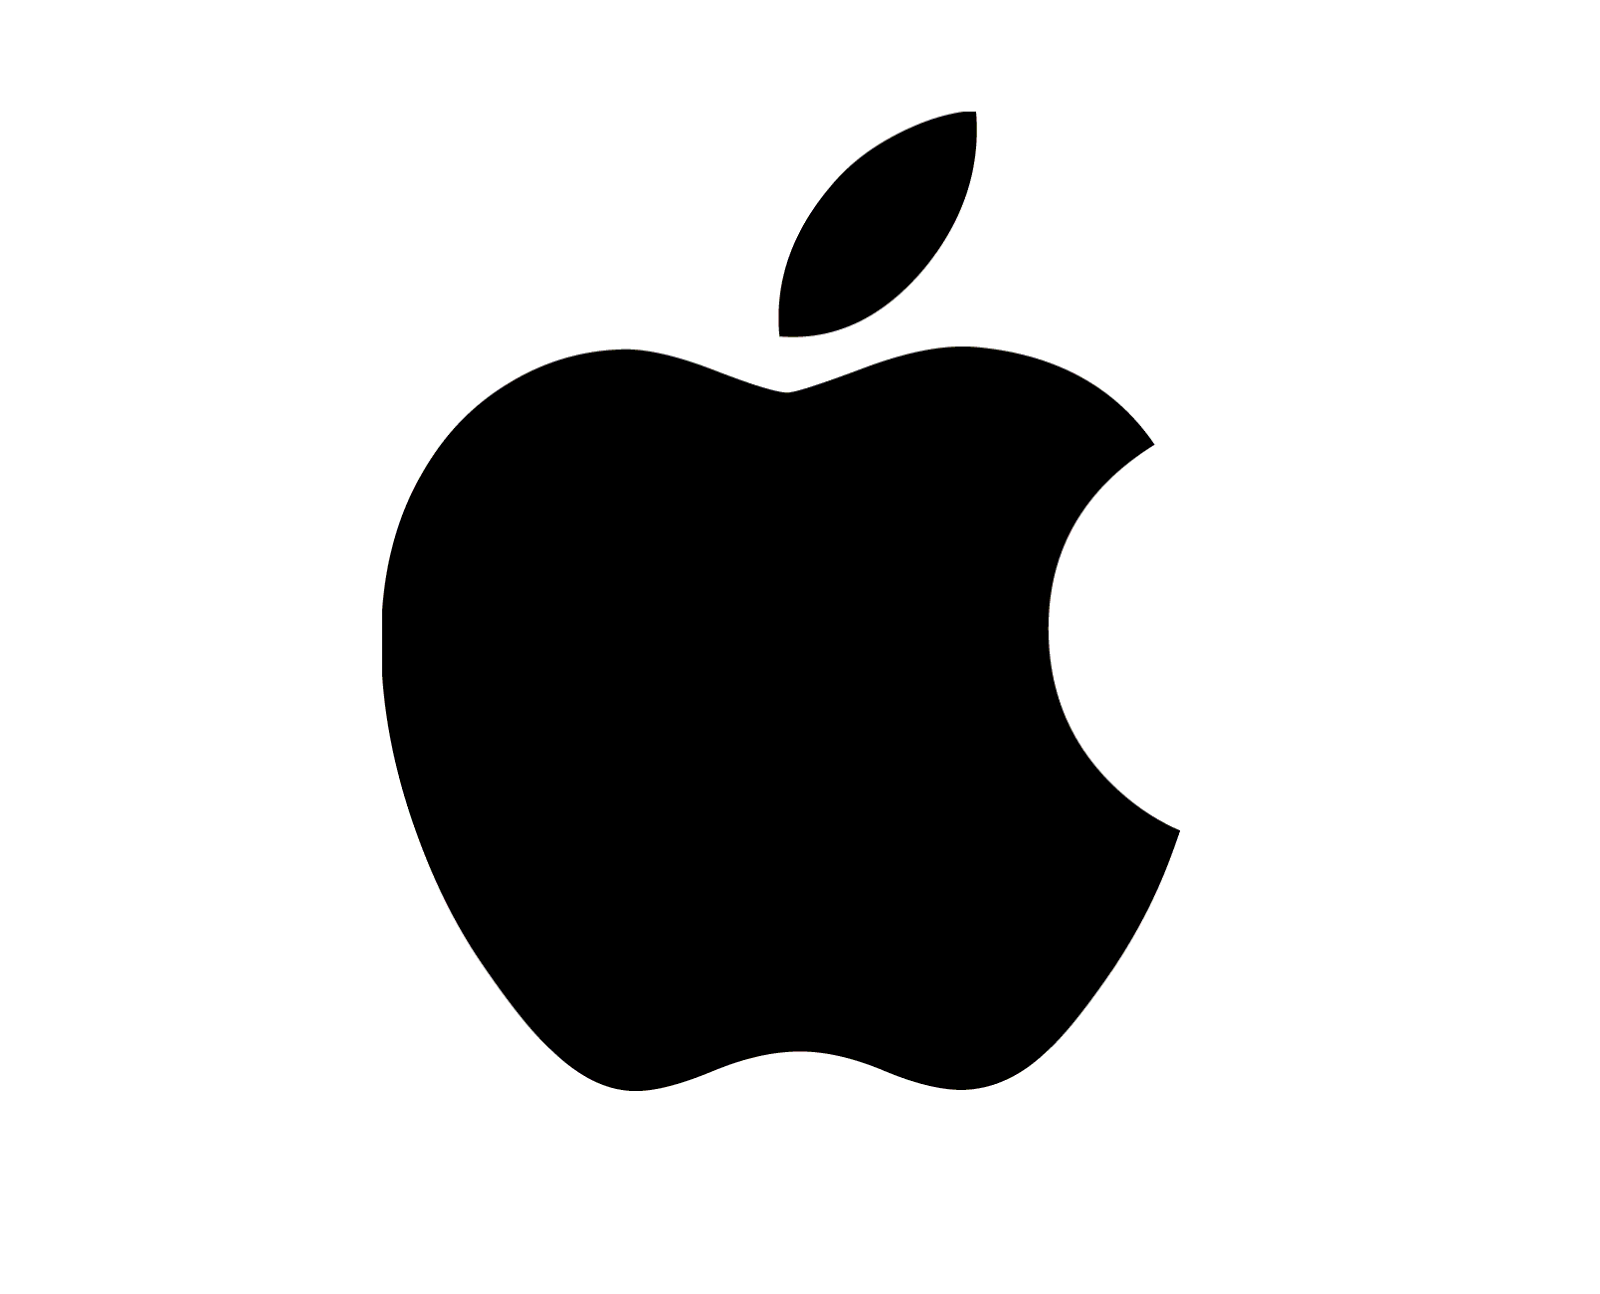 image official apple logo 2013 pictures 5 hd wallpapers png rh respawnables wikia com official apple logo 2018 official apple logo high resolution